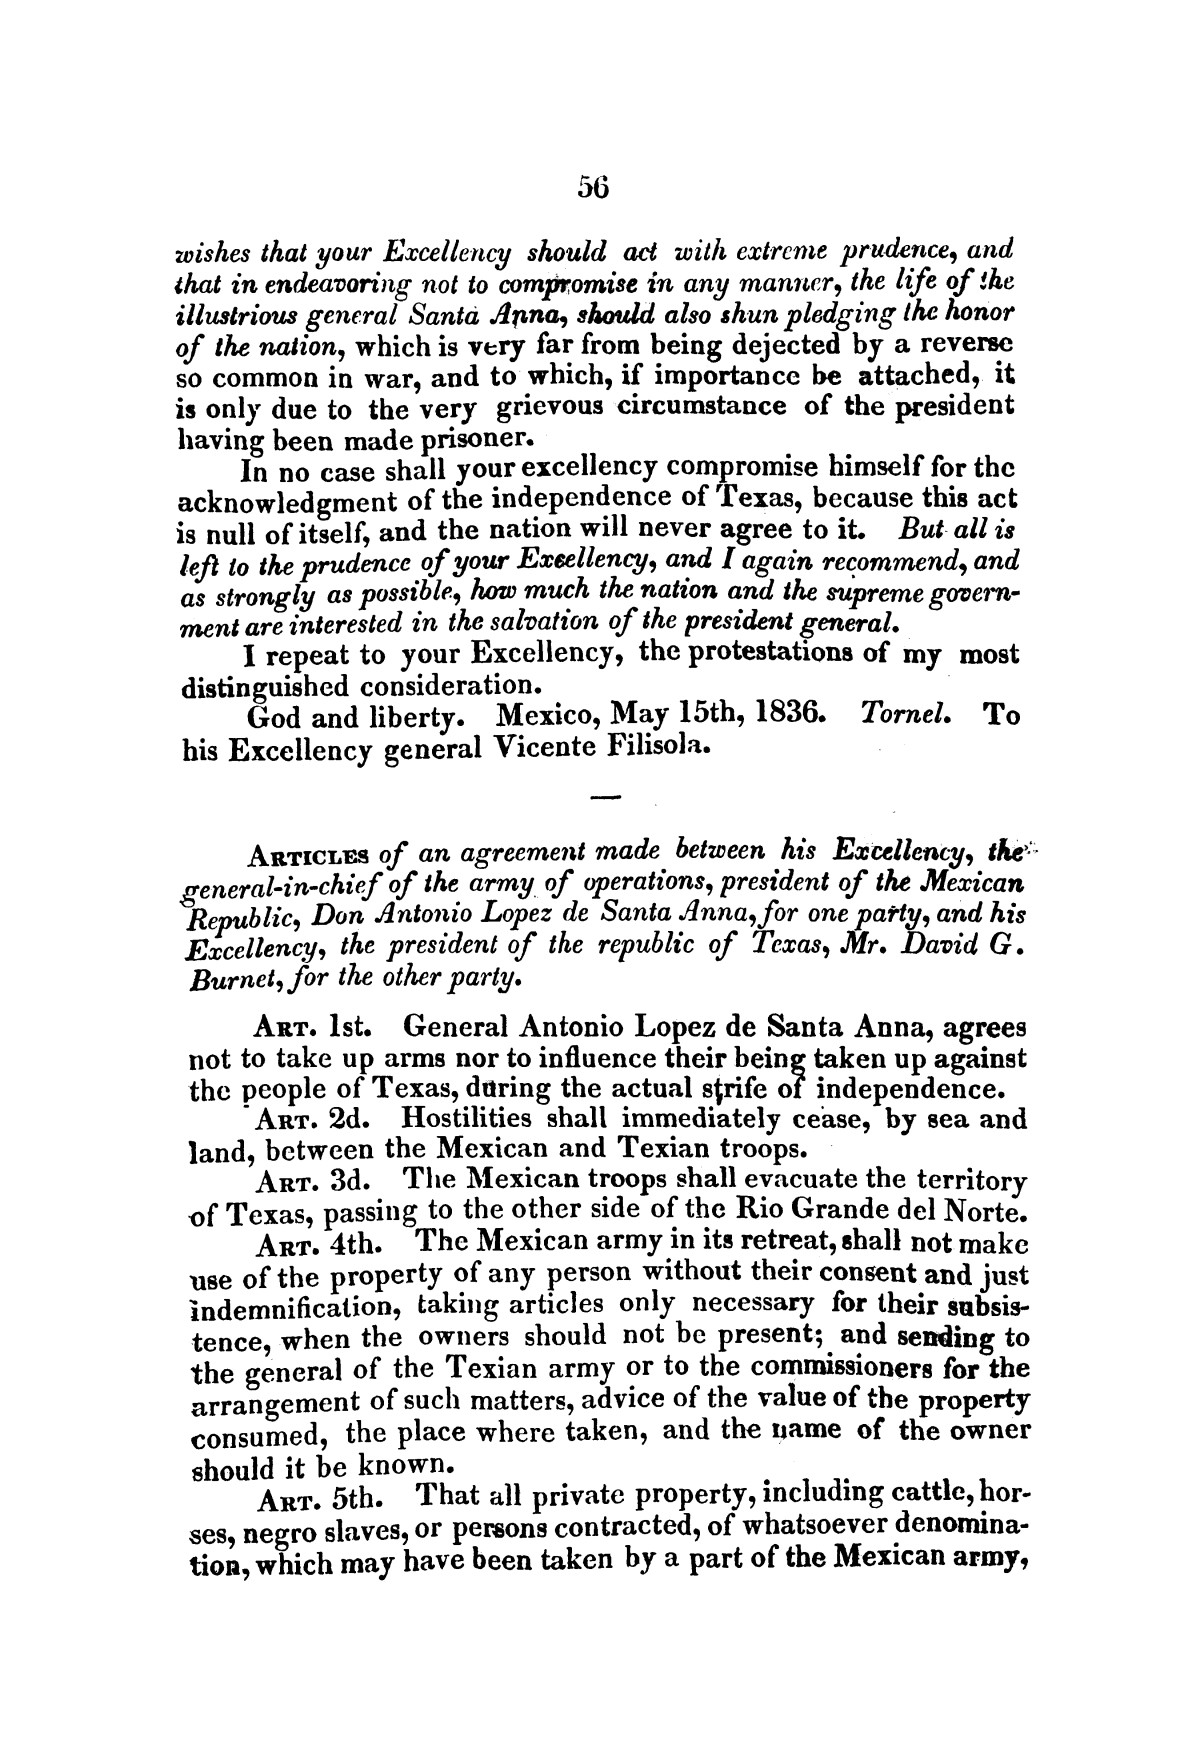 Evacuation of Texas : translation of the Representation addressed to the supreme government / by Vicente Filisola, in defence of his honor, and explanation of his operations as commander-in-chief of the army against Texas.                                                                                                      [Sequence #]: 59 of 72